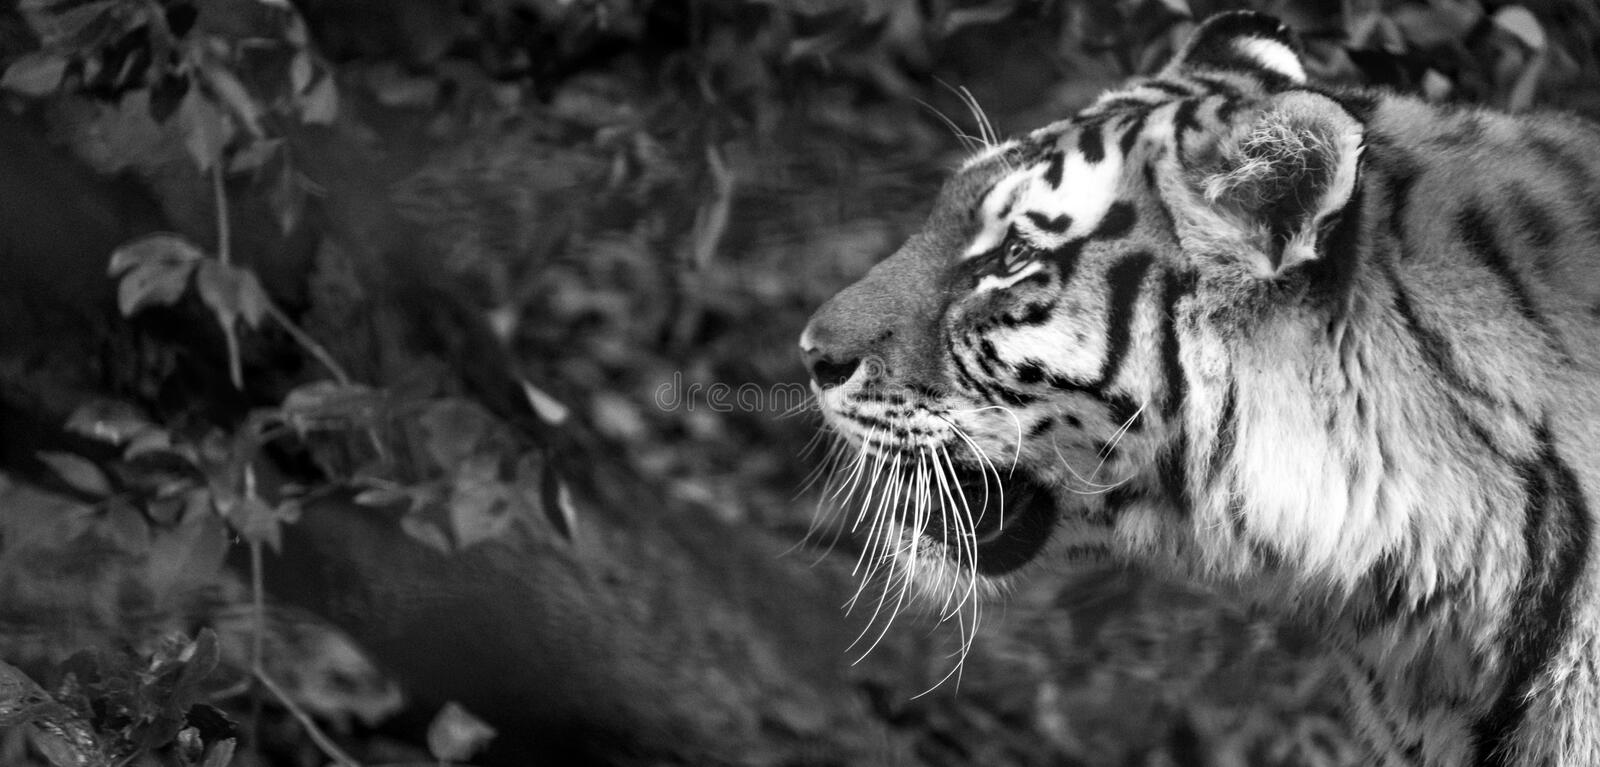 Tiger in profile, photographed in monochrome at Port Lympne Safari Park near Ashford Kent UK. Tiger head in profile, photographed in monochrome at Port Lympne royalty free stock images